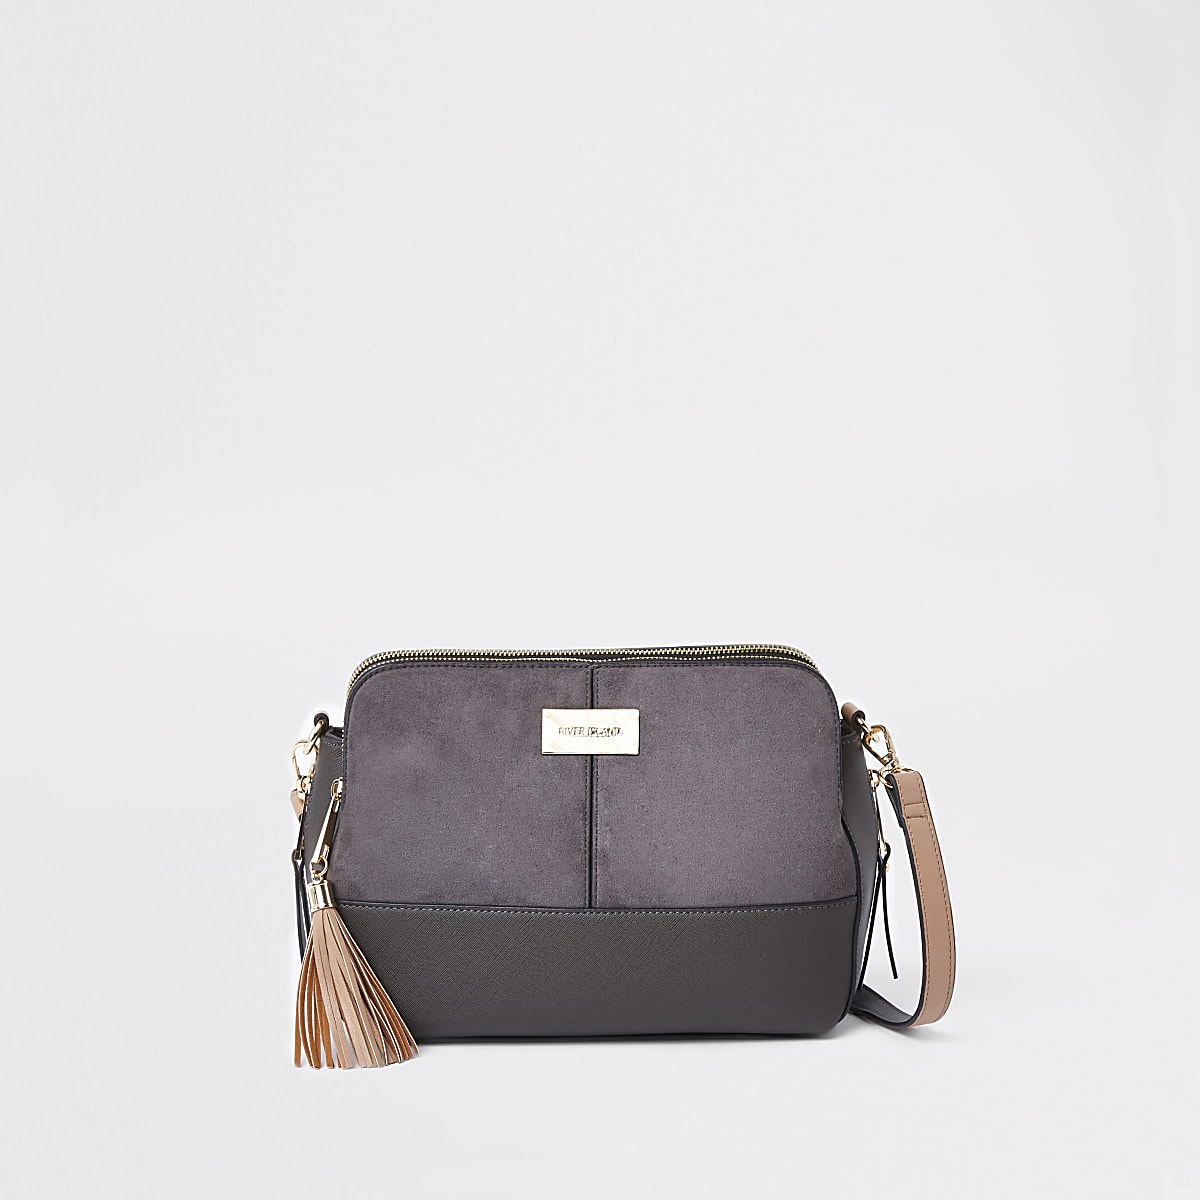 6ef6776ab8c81b Dark grey triple compartment cross body bag - Cross Body Bags - Bags &  Purses - women